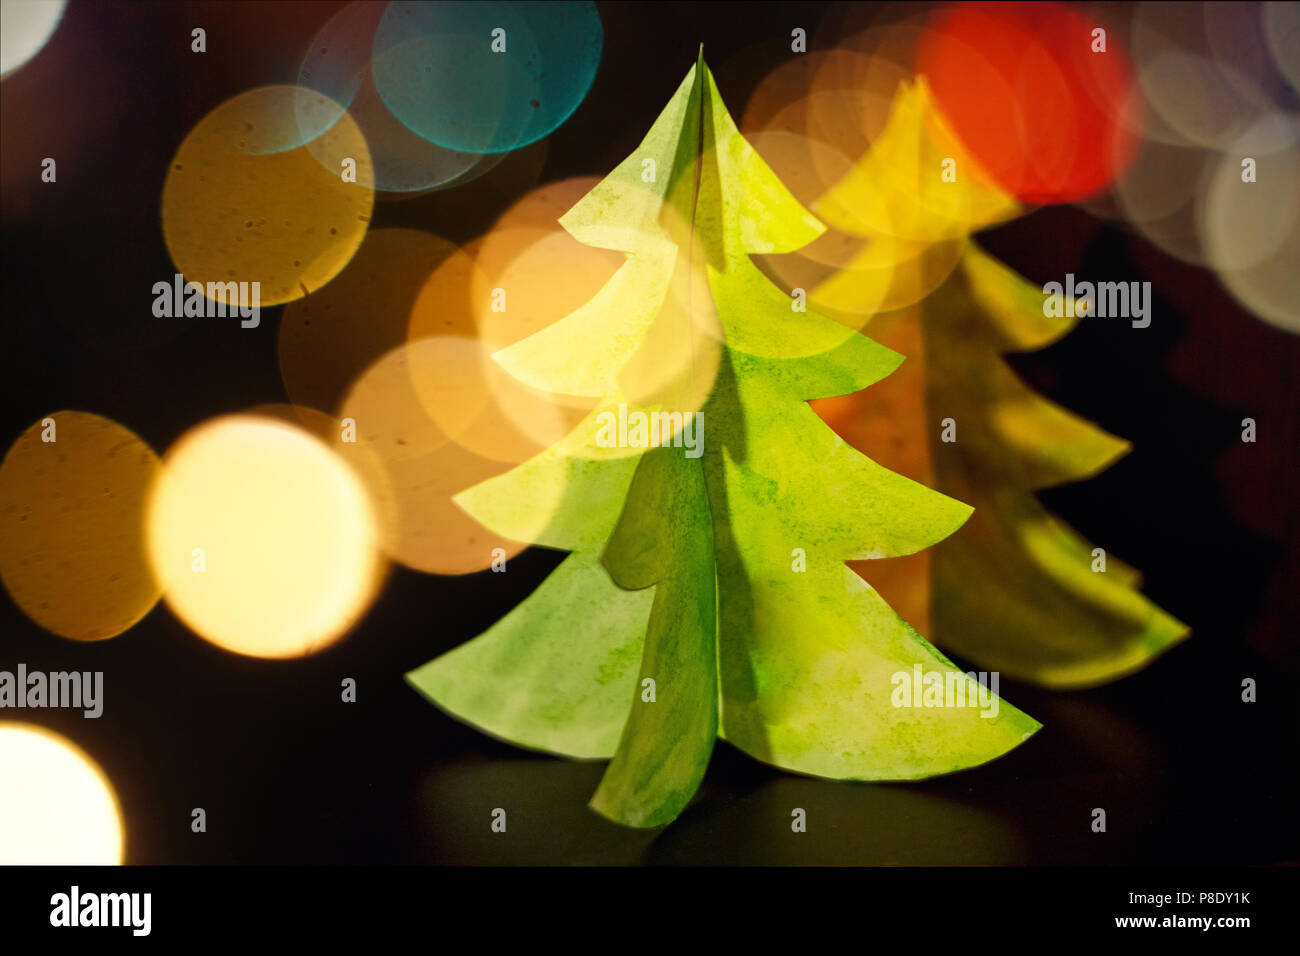 Merry christmas and happy new year greeting card with bokeh effect. New year celebration holiday background.Abstract Blurred Bokeh Holiday Backdrop.design card. Christmas tree paper craft. - Stock Image